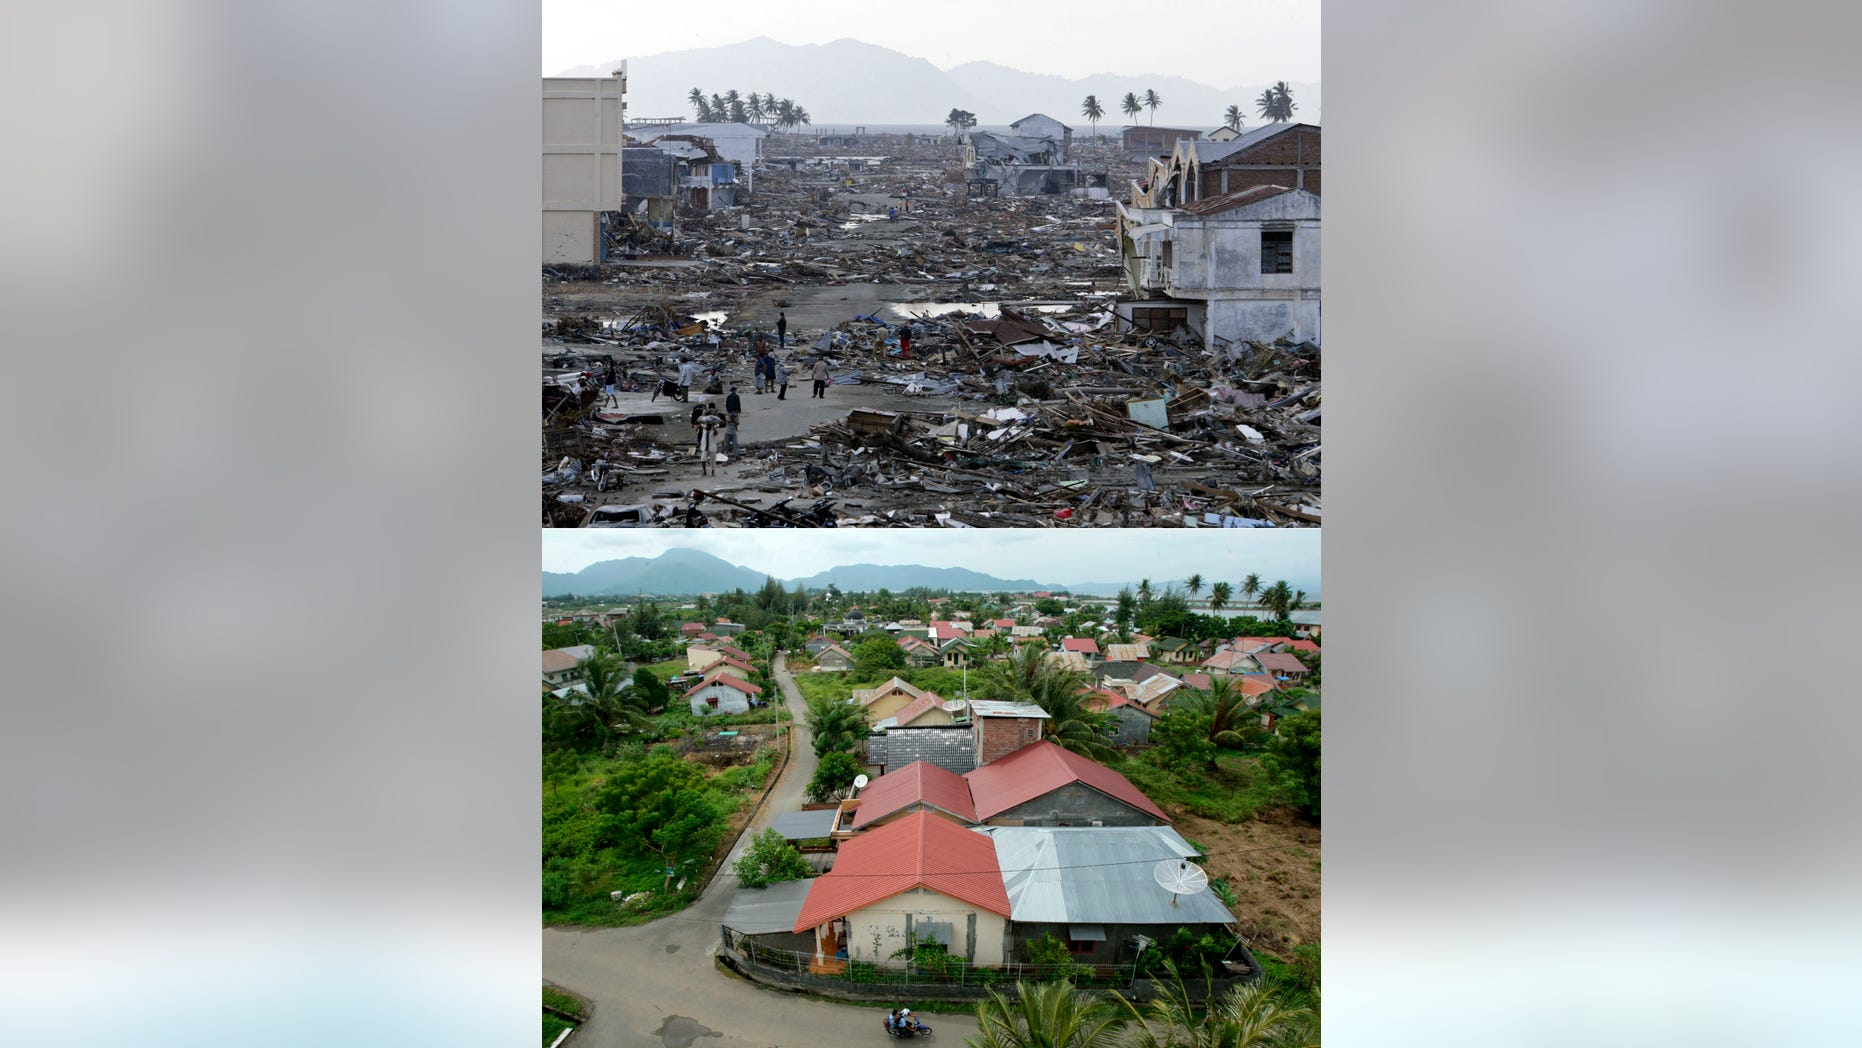 This combination of photos shows areas affected by the earthquake-triggered tsunami which hit Banda Aceh, the capital of Aceh province, Indonesia, on Dec 25, 2004. The top photo shows a devastated area on Dec 31, 2004, six days after the tsunami. The bottom photo shows an area with rebuilt housing on Nov. 19, 2013. Aceh's reconstruction didn't always run smoothly, especially during the first year, but it is now almost universally regarded as successful. Around 130,000 houses were built in less than three years, along with scores of airports, roads and schools. It was the biggest construction project in the developing world. The man who steered Indonesia to recovery after the 2004 tsunami has some cautionary words for the Philippines as it begins planning reconstruction after Typhoon Haiyan. Hundreds of thousands of homeless survivors will get angry about living in tents well before houses will be ready for them, and inflation will soon make those houses much more expensive to build. (AP Photo)